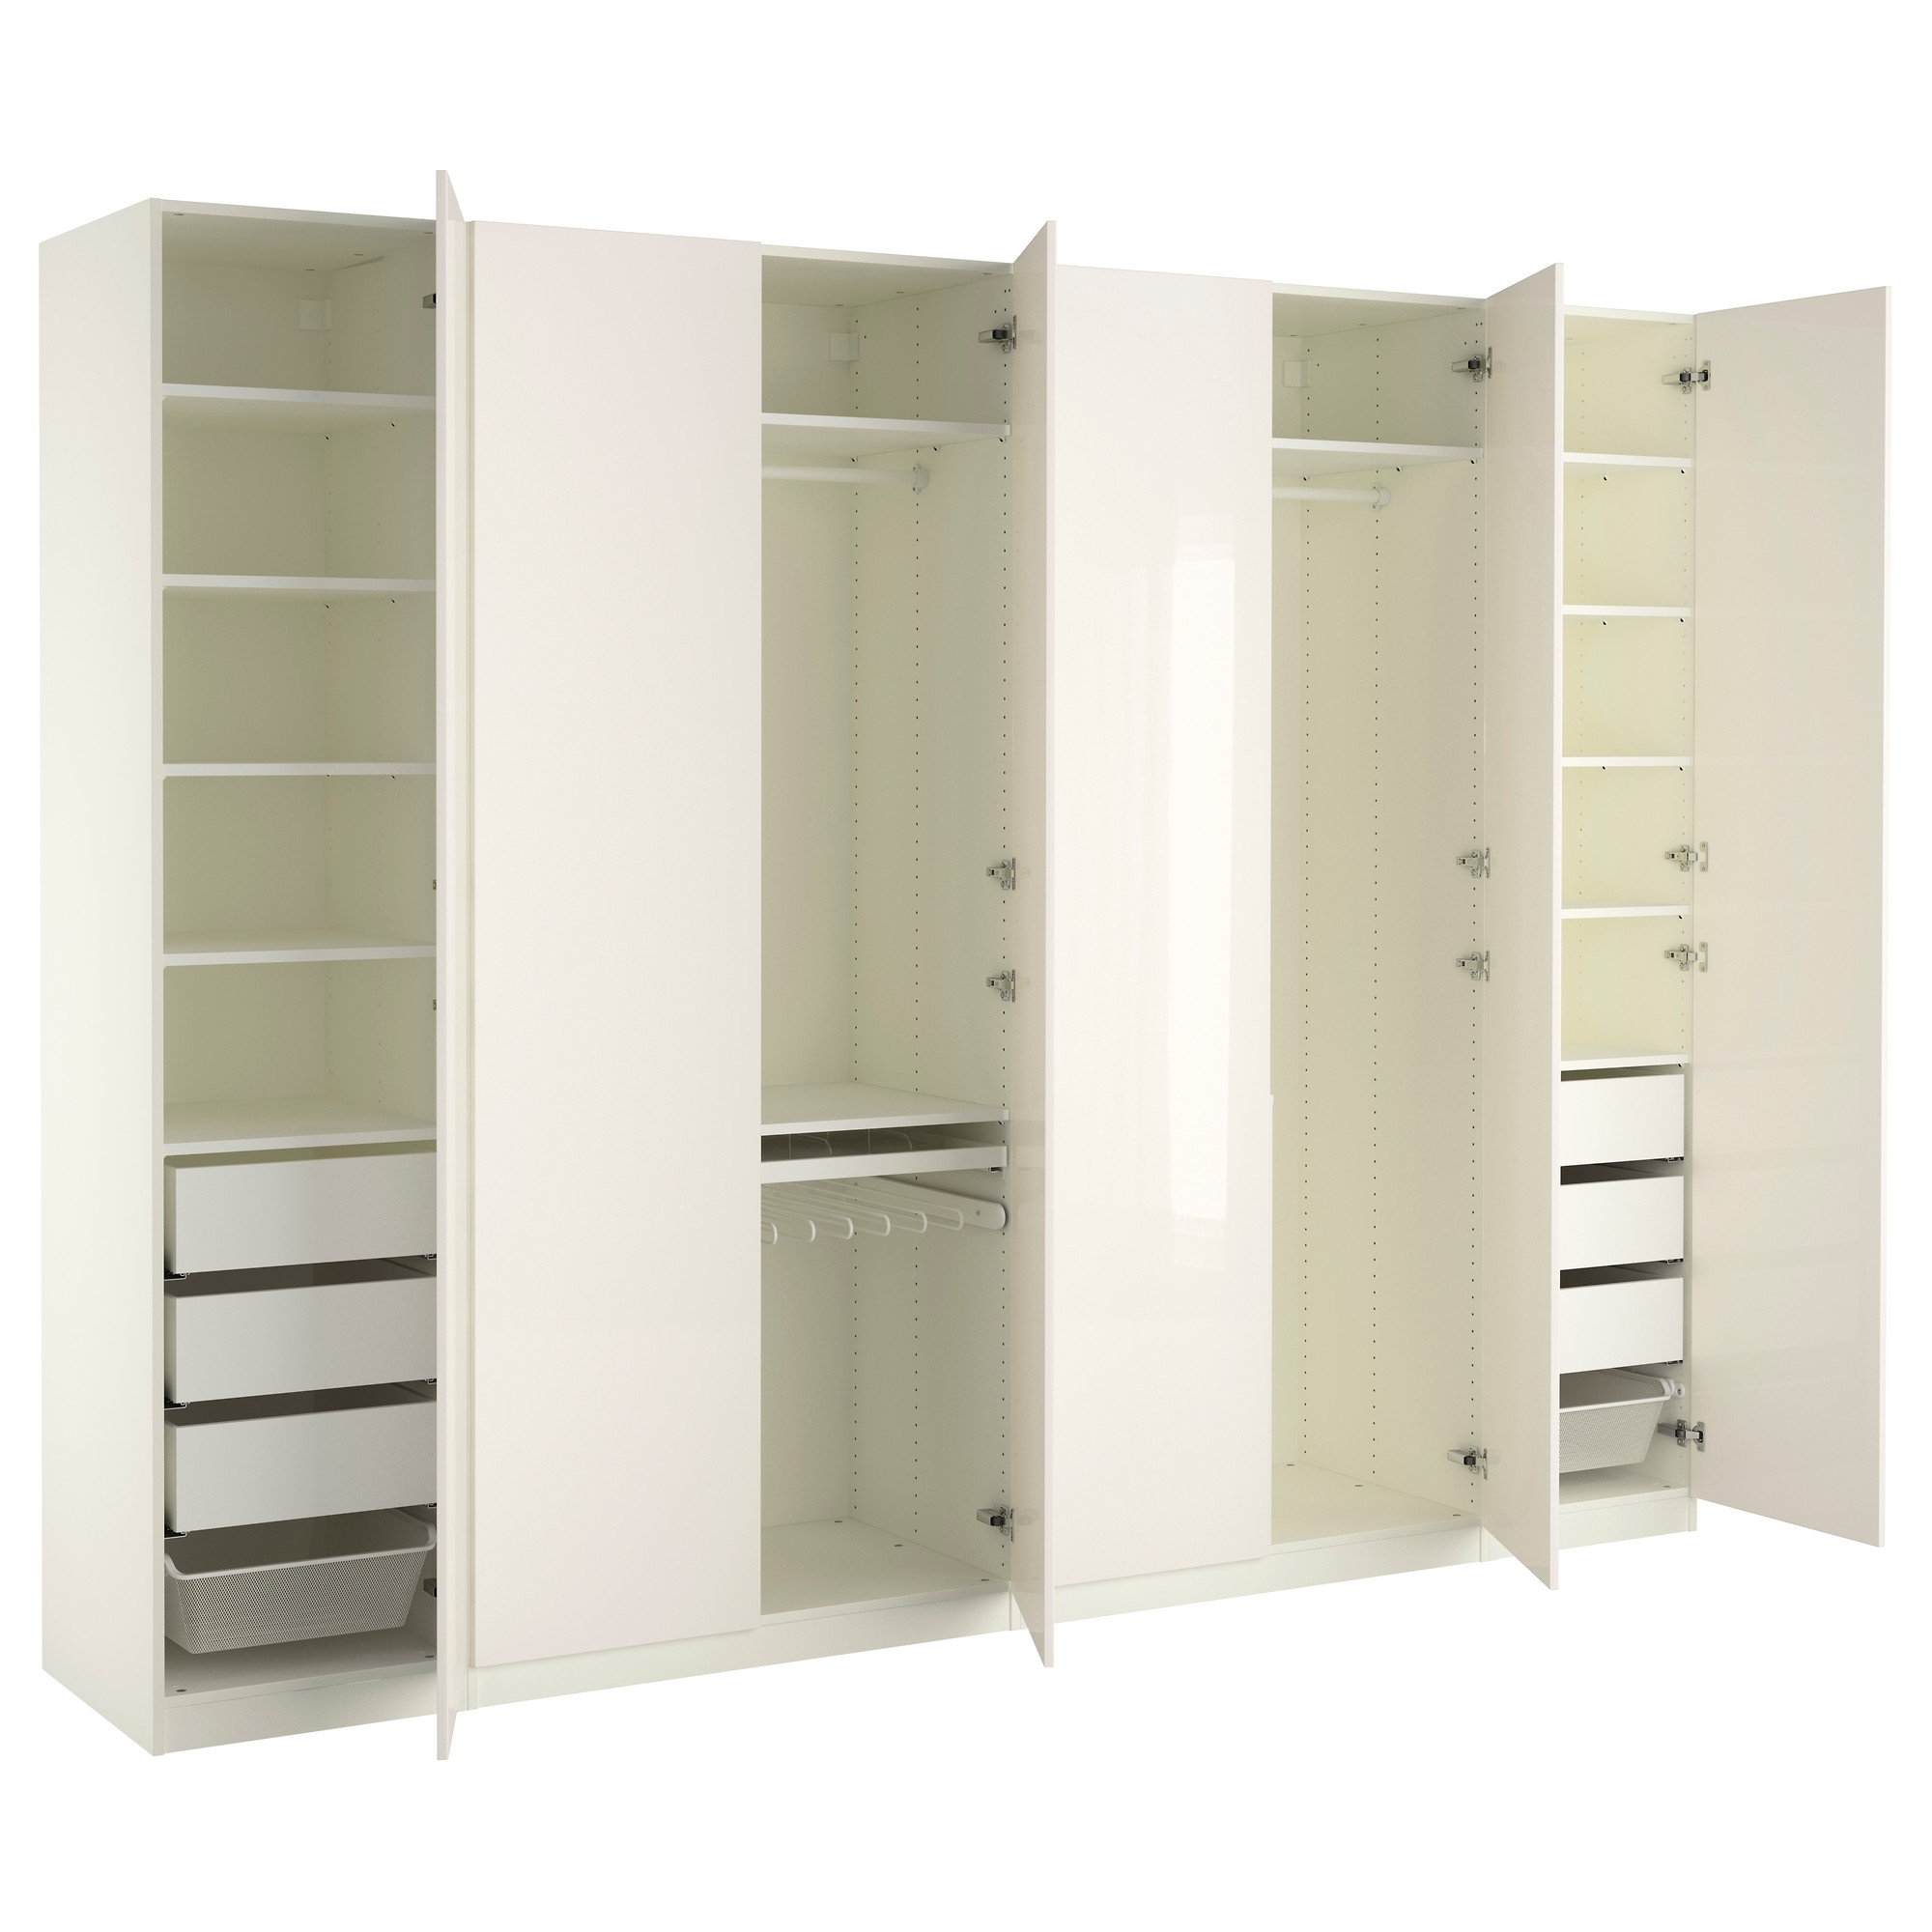 White High Gloss Wardrobes Pertaining To Most Recent Pax Wardrobe White/fardal High Gloss/white 300x60x236 Cm – Ikea (View 10 of 15)